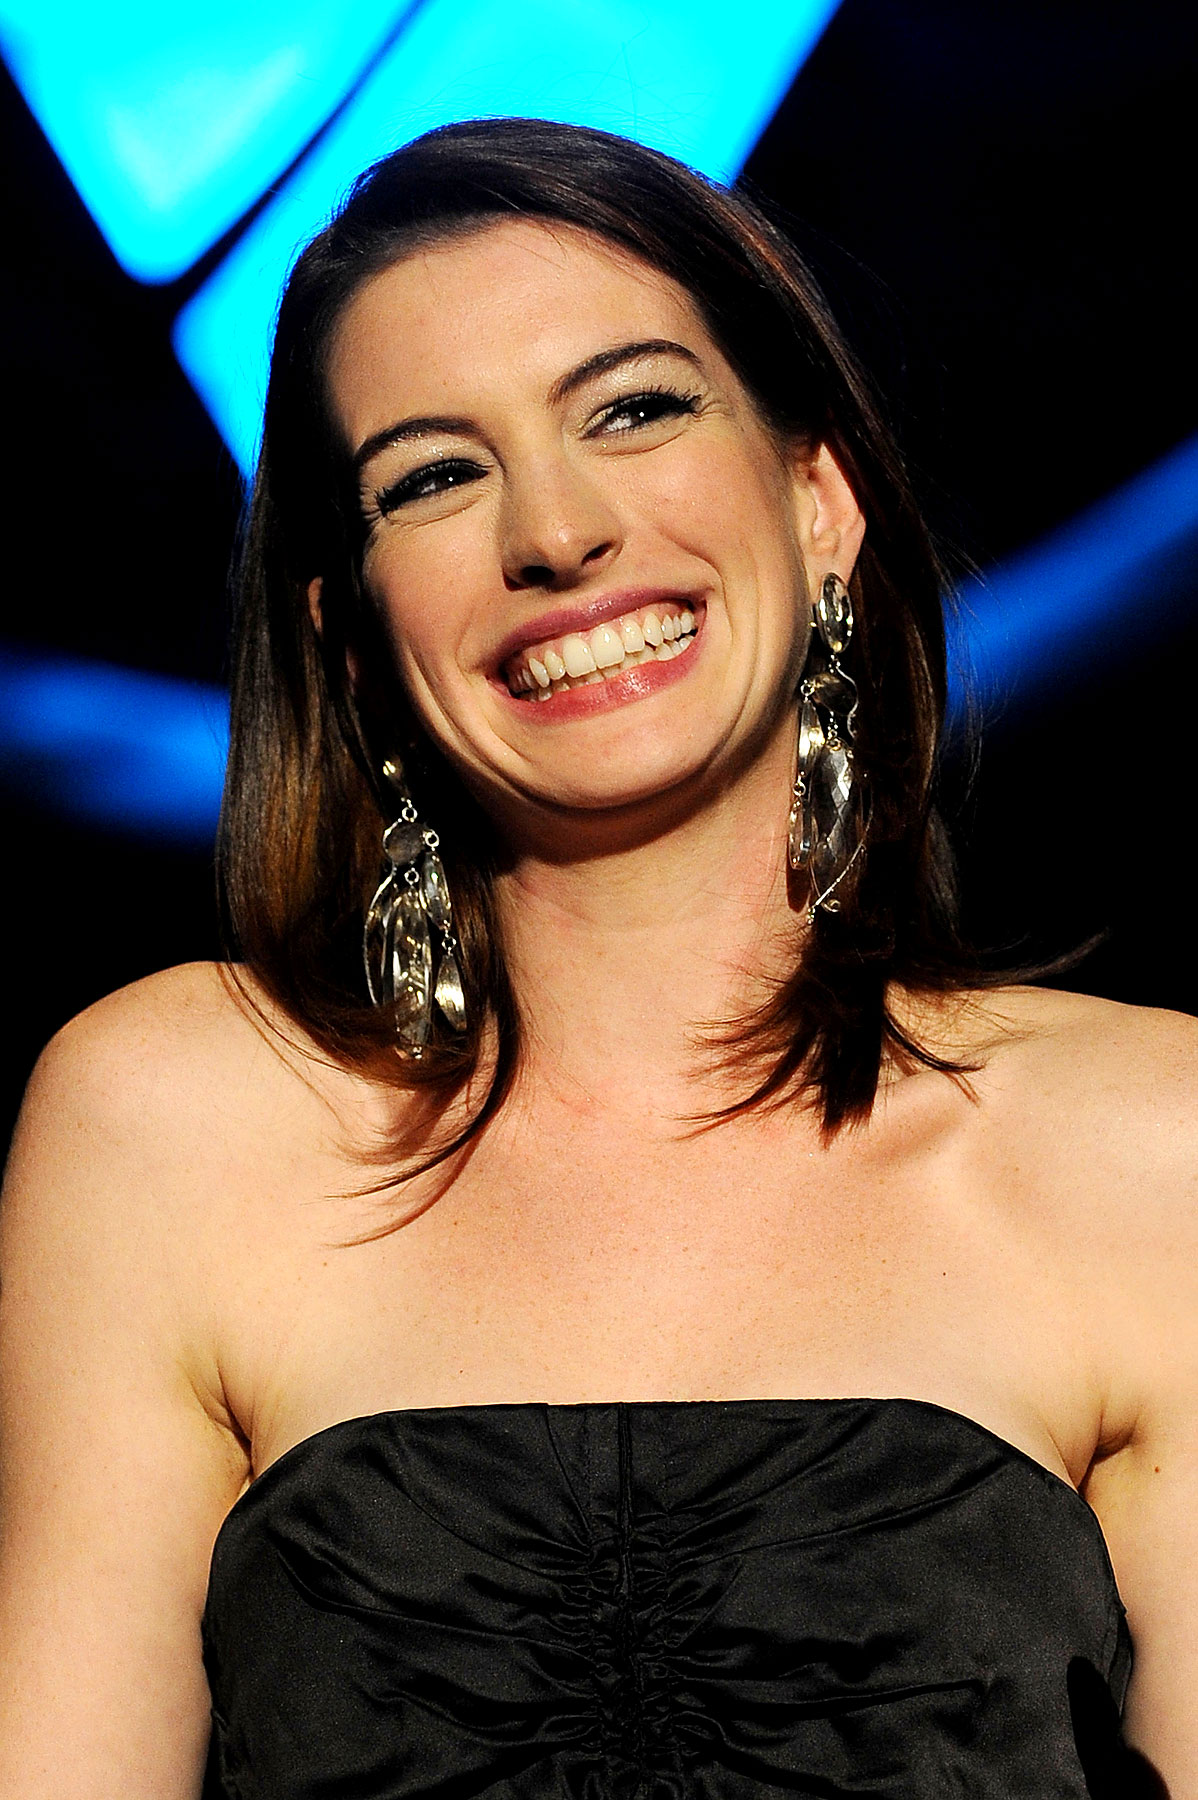 PHOTO GALLERY: Anne Hathaway Has 'Empire State Pride'